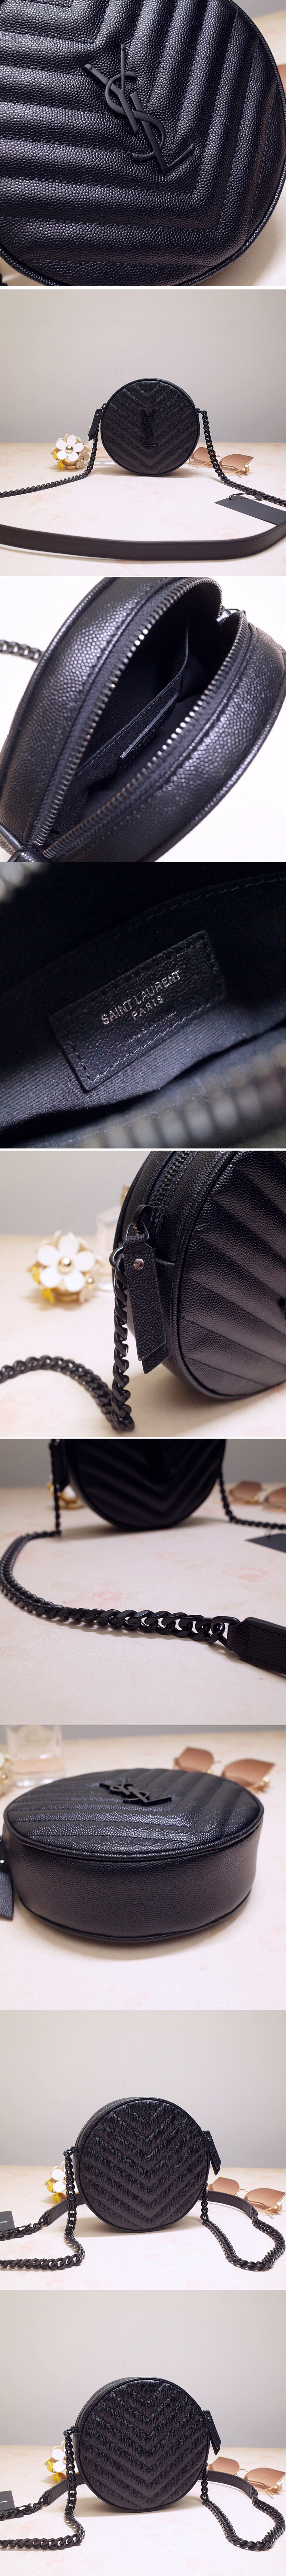 Replica Saint Laurent 6104361 YSL Vinyle Round Camera Bags in Black Chevron-Quilted Grain de Poudre Embossed Leather with black chain